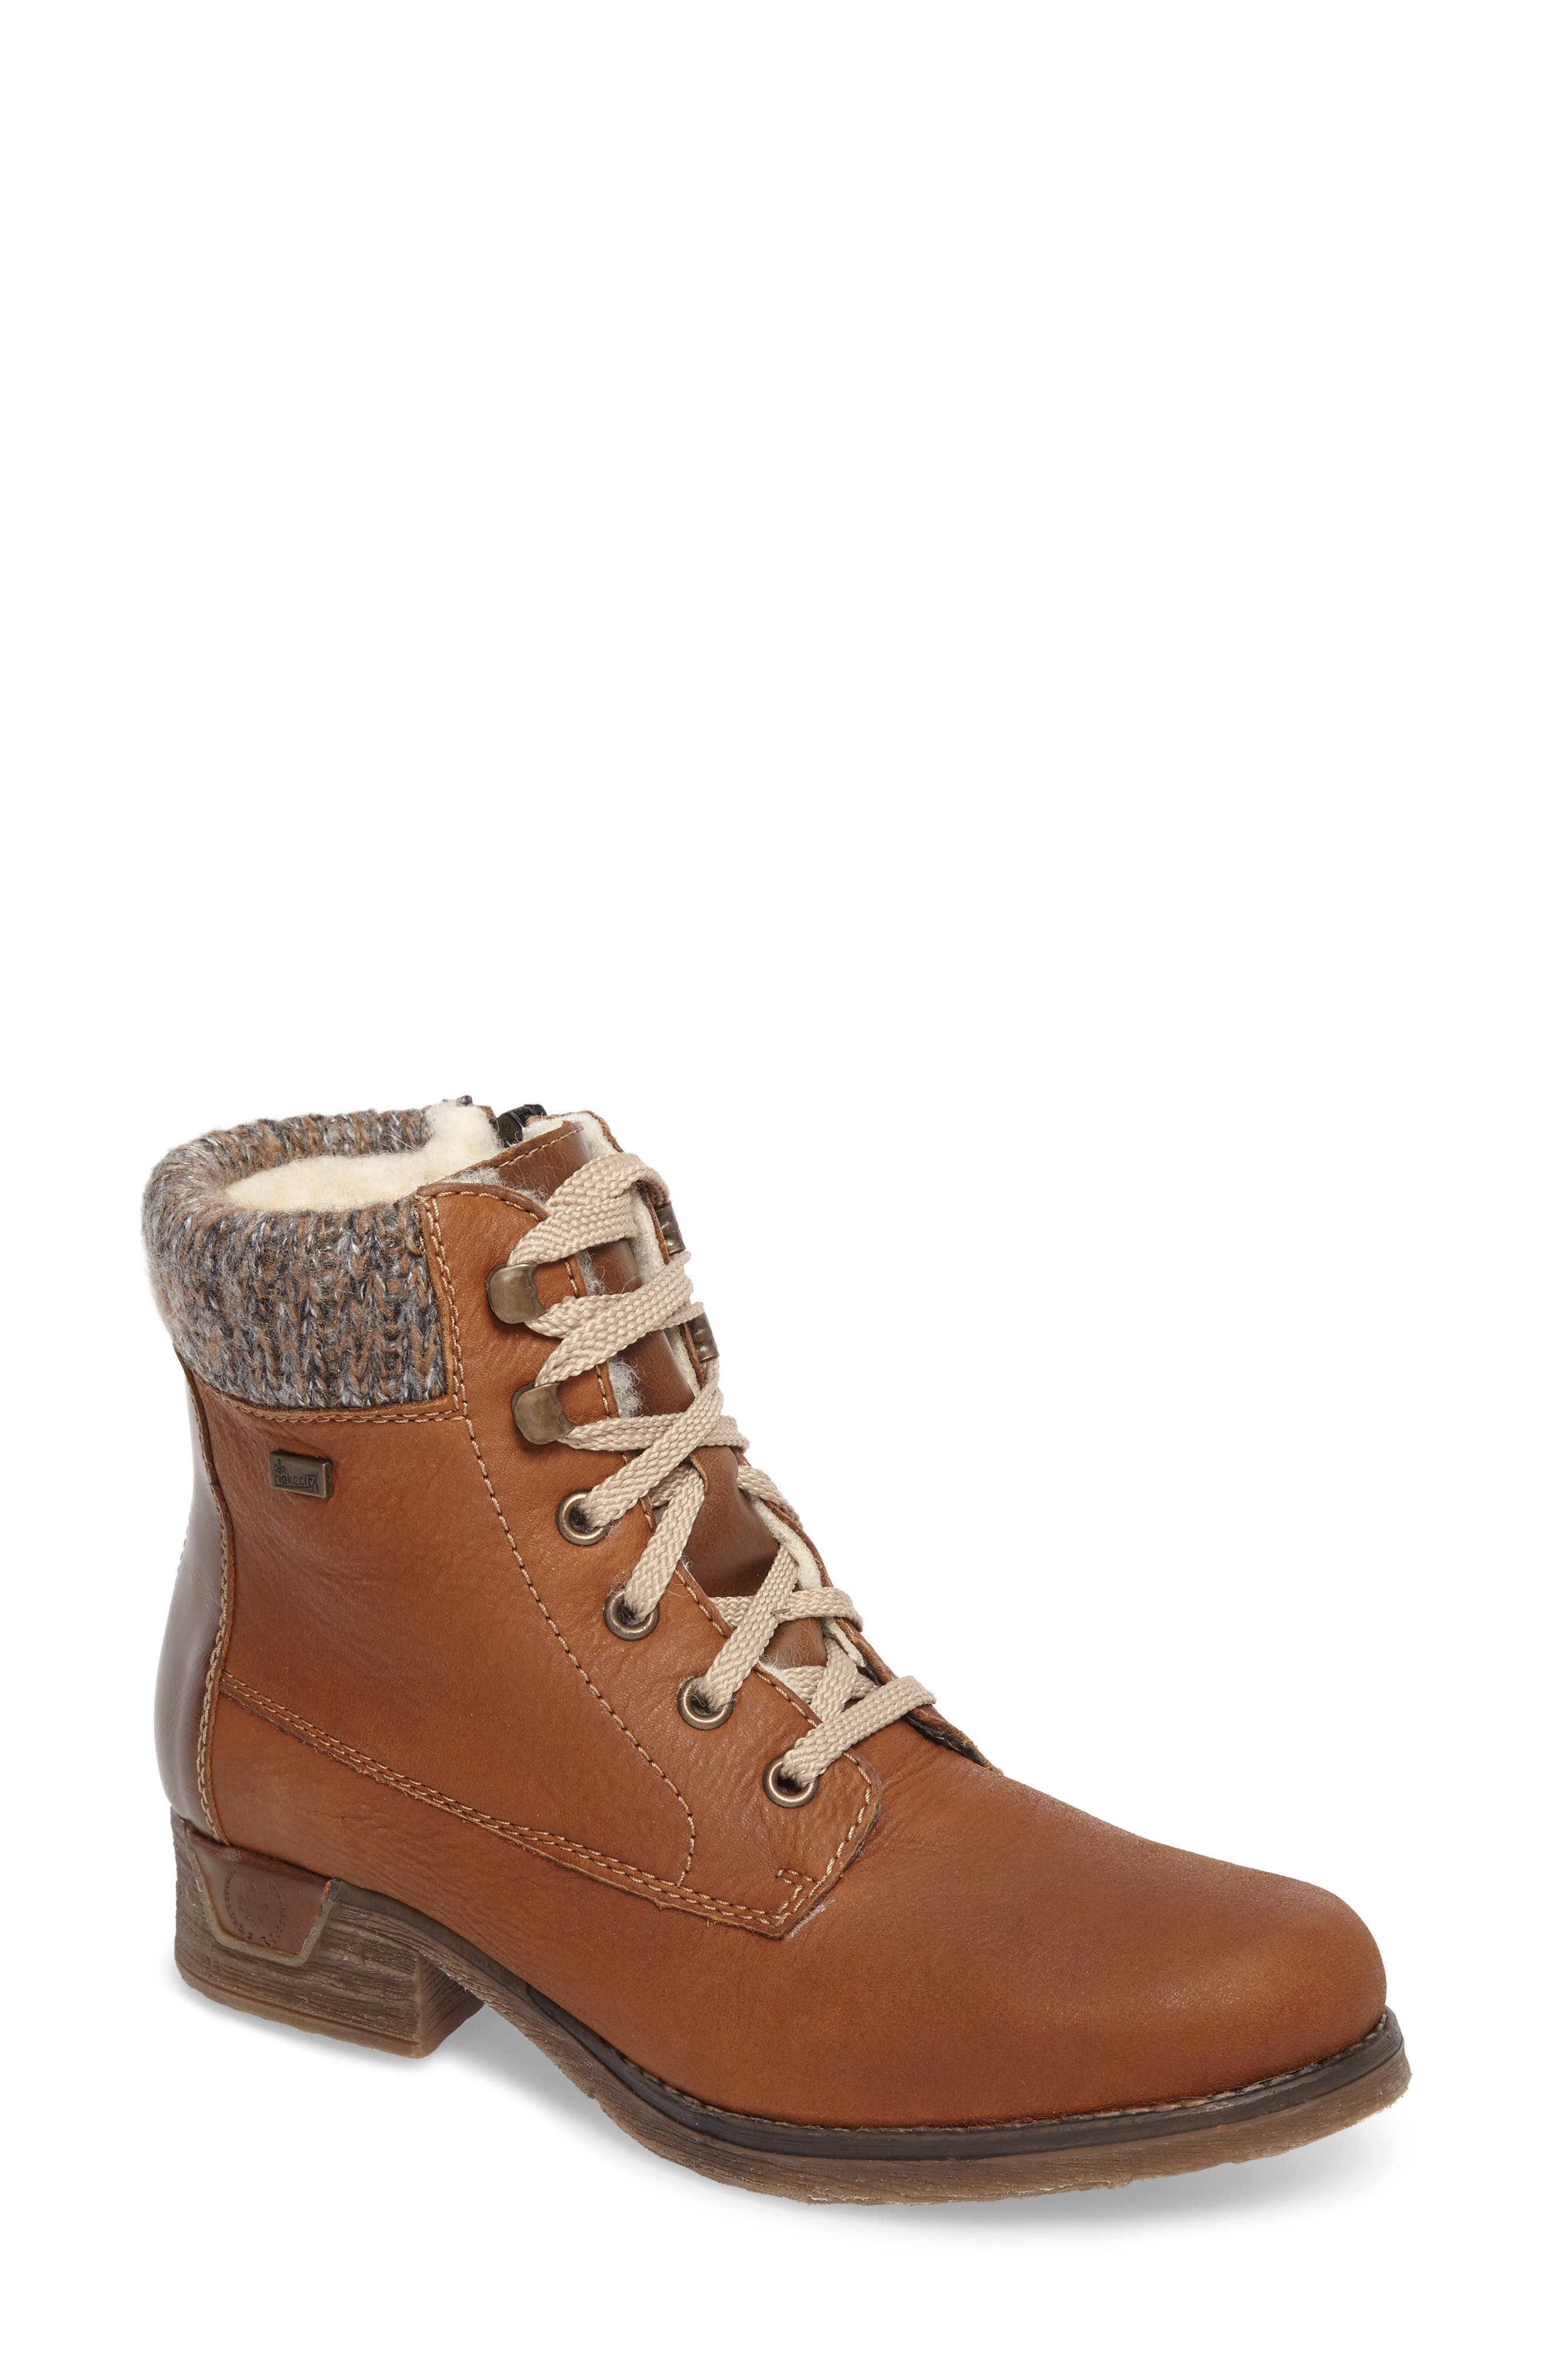 Alternate Image 1 Selected - Rieker Antistress Fee 02 Lace-Up Boot (Women)